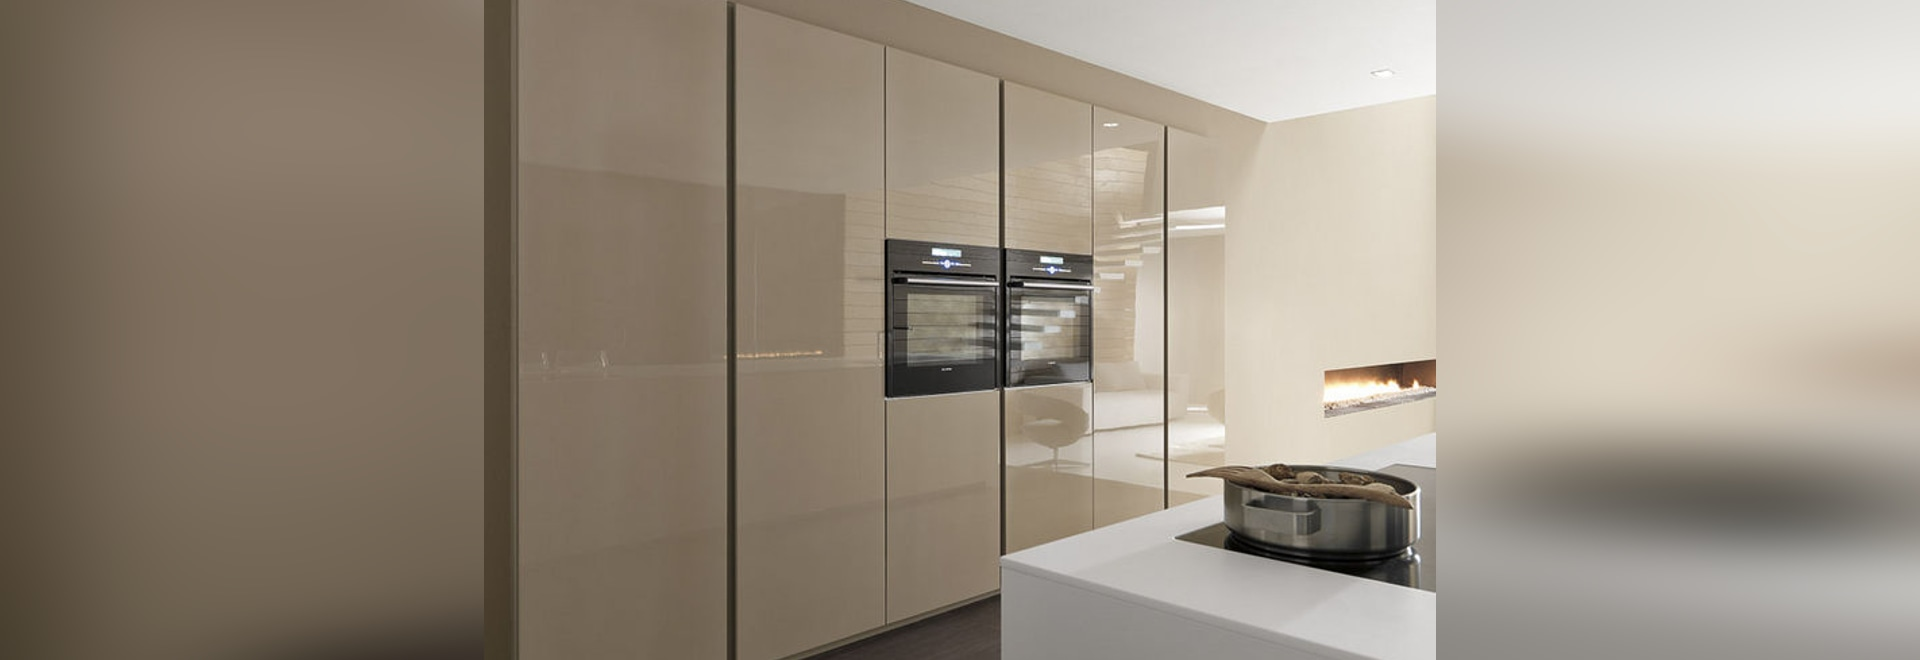 Beautiful Cucine Comprex Prezzi Images - ubiquitousforeigner.us ...